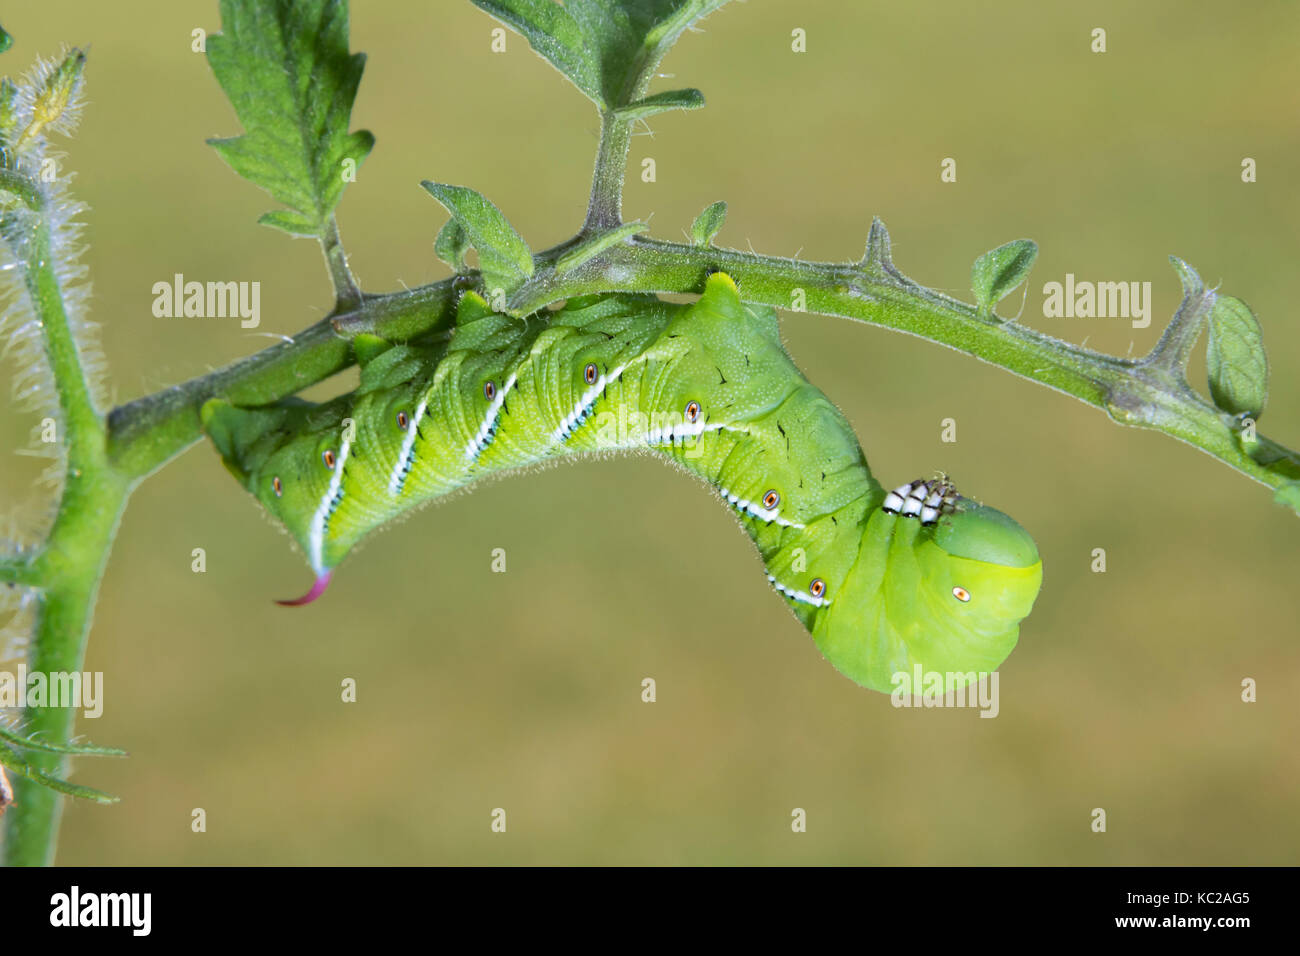 Tomato Hornworm Moth or Five-Spotted Hawk-Moth (Manduca quinquemaculata) caterpillar, larvae, Ames, Iowa, USA - Stock Image